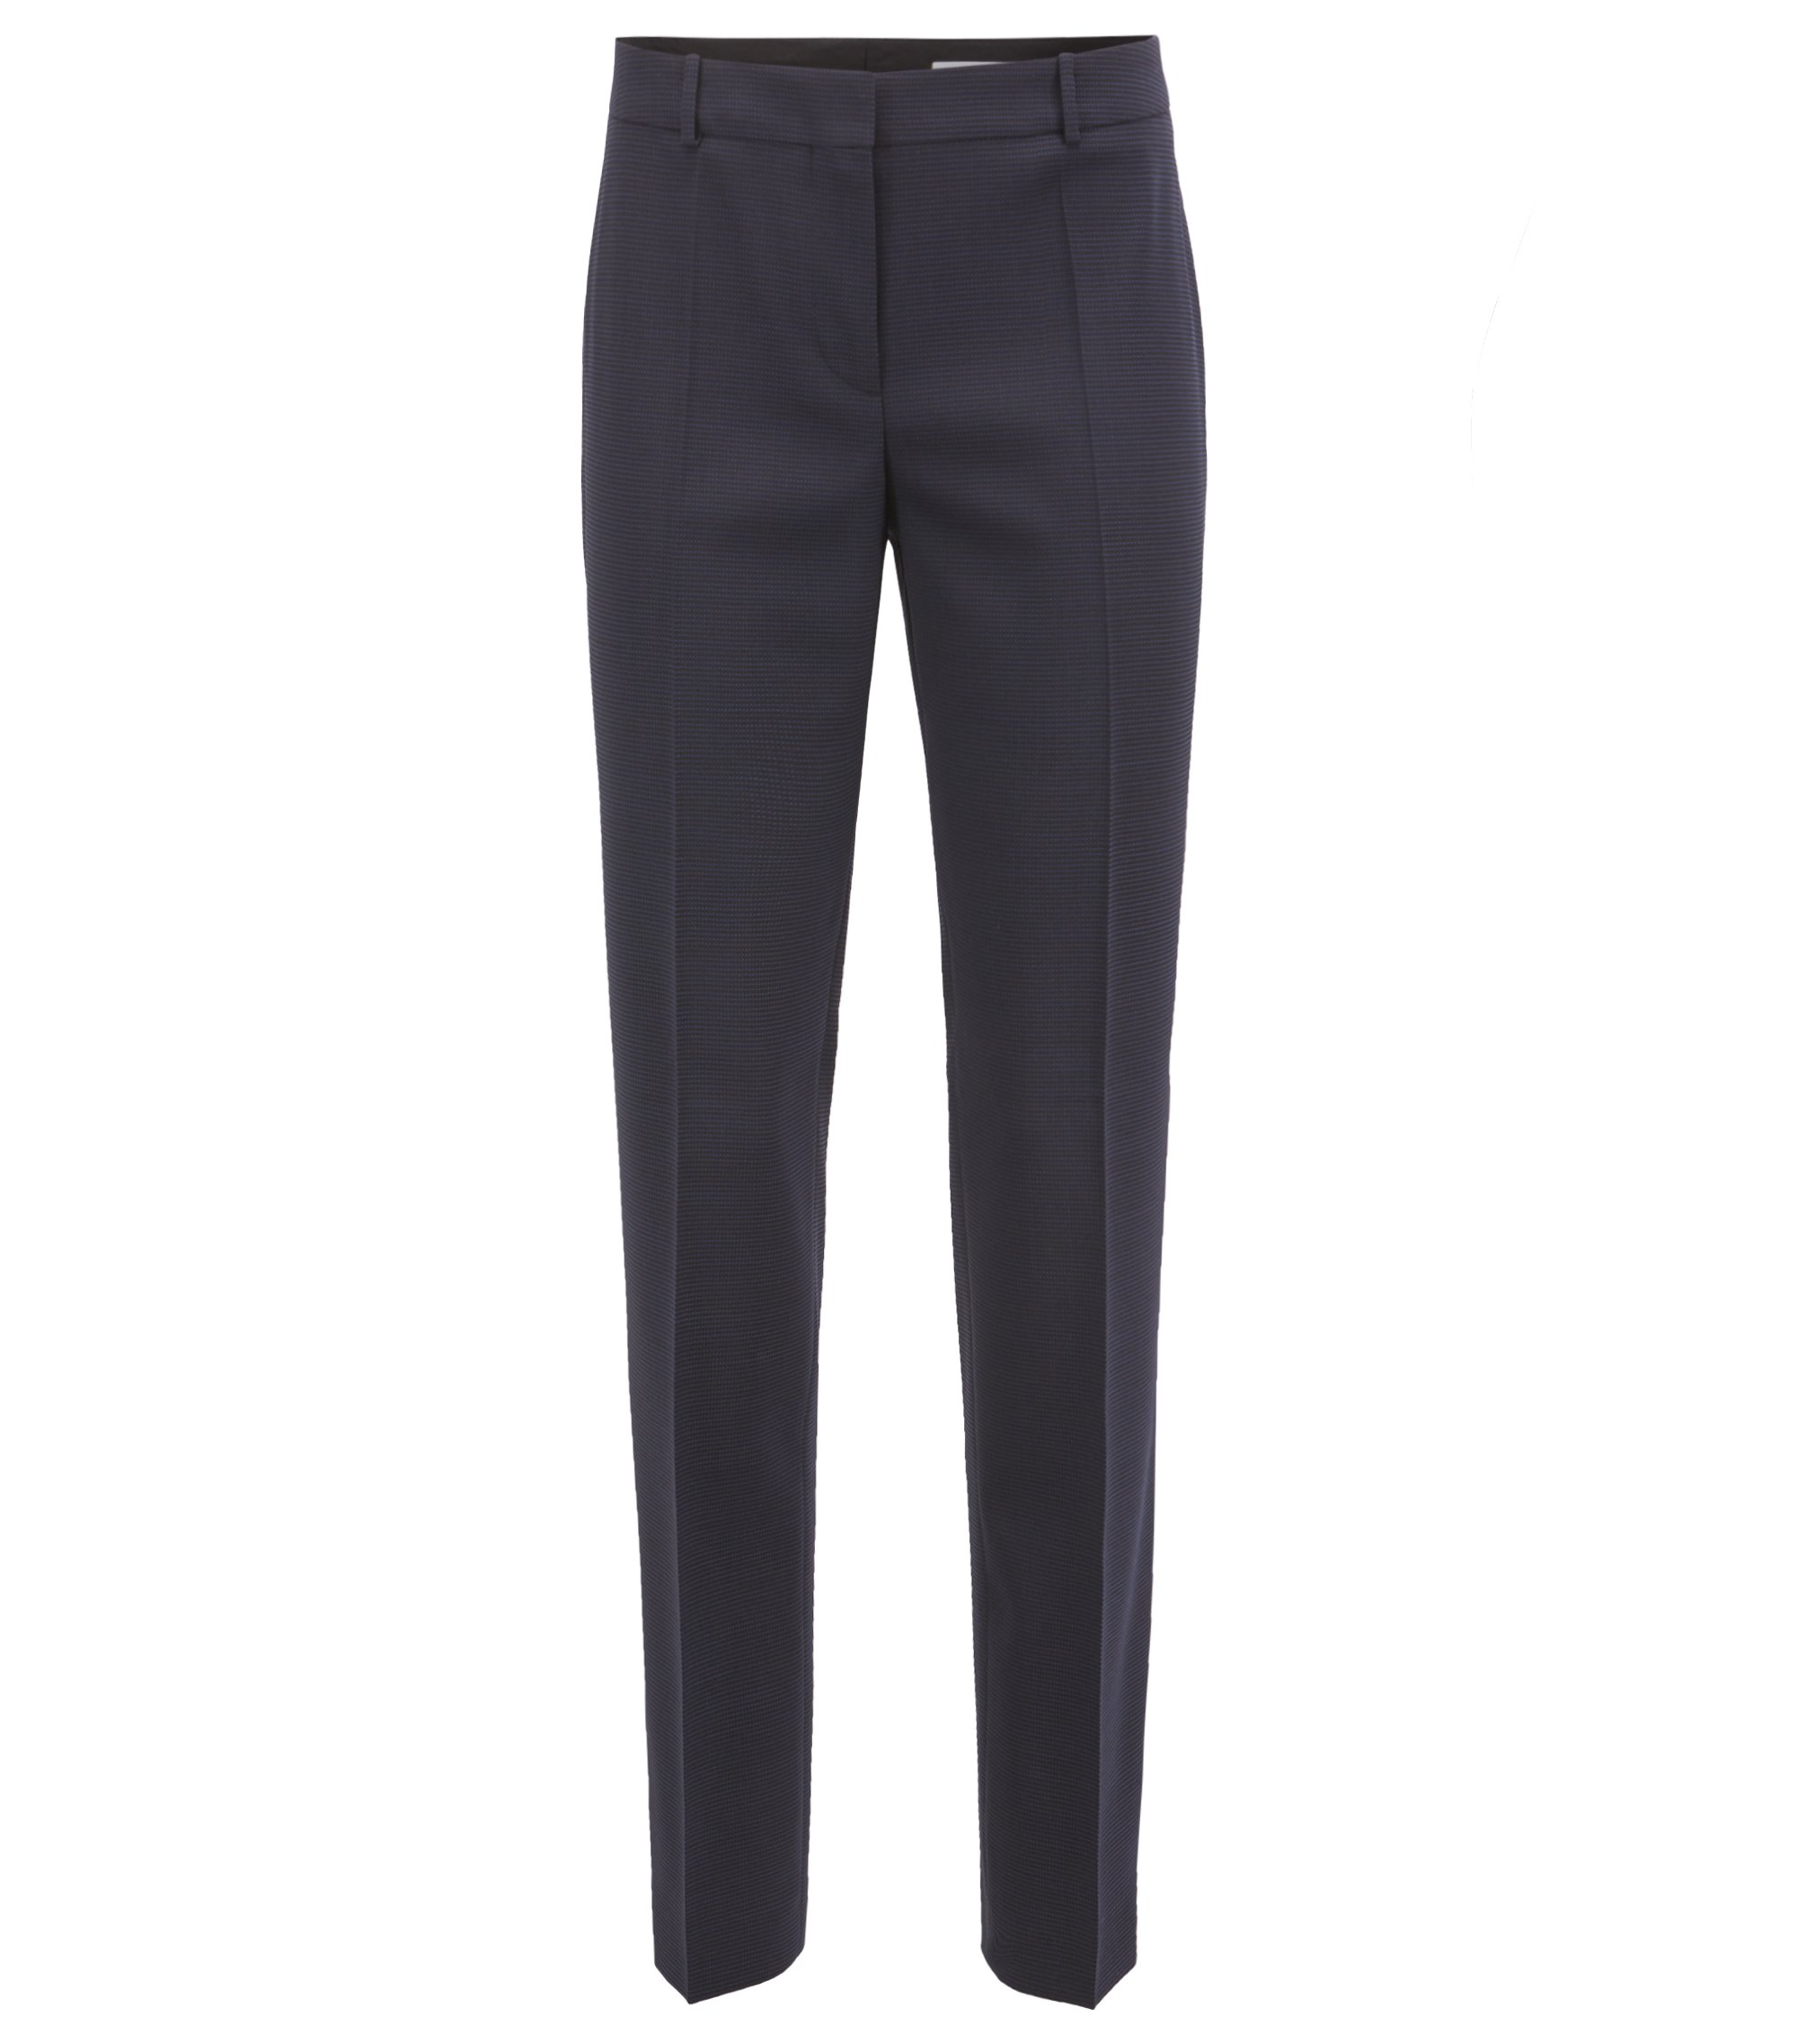 Pantalon Slim Fit en laine vierge stretch italienne, Fantaisie